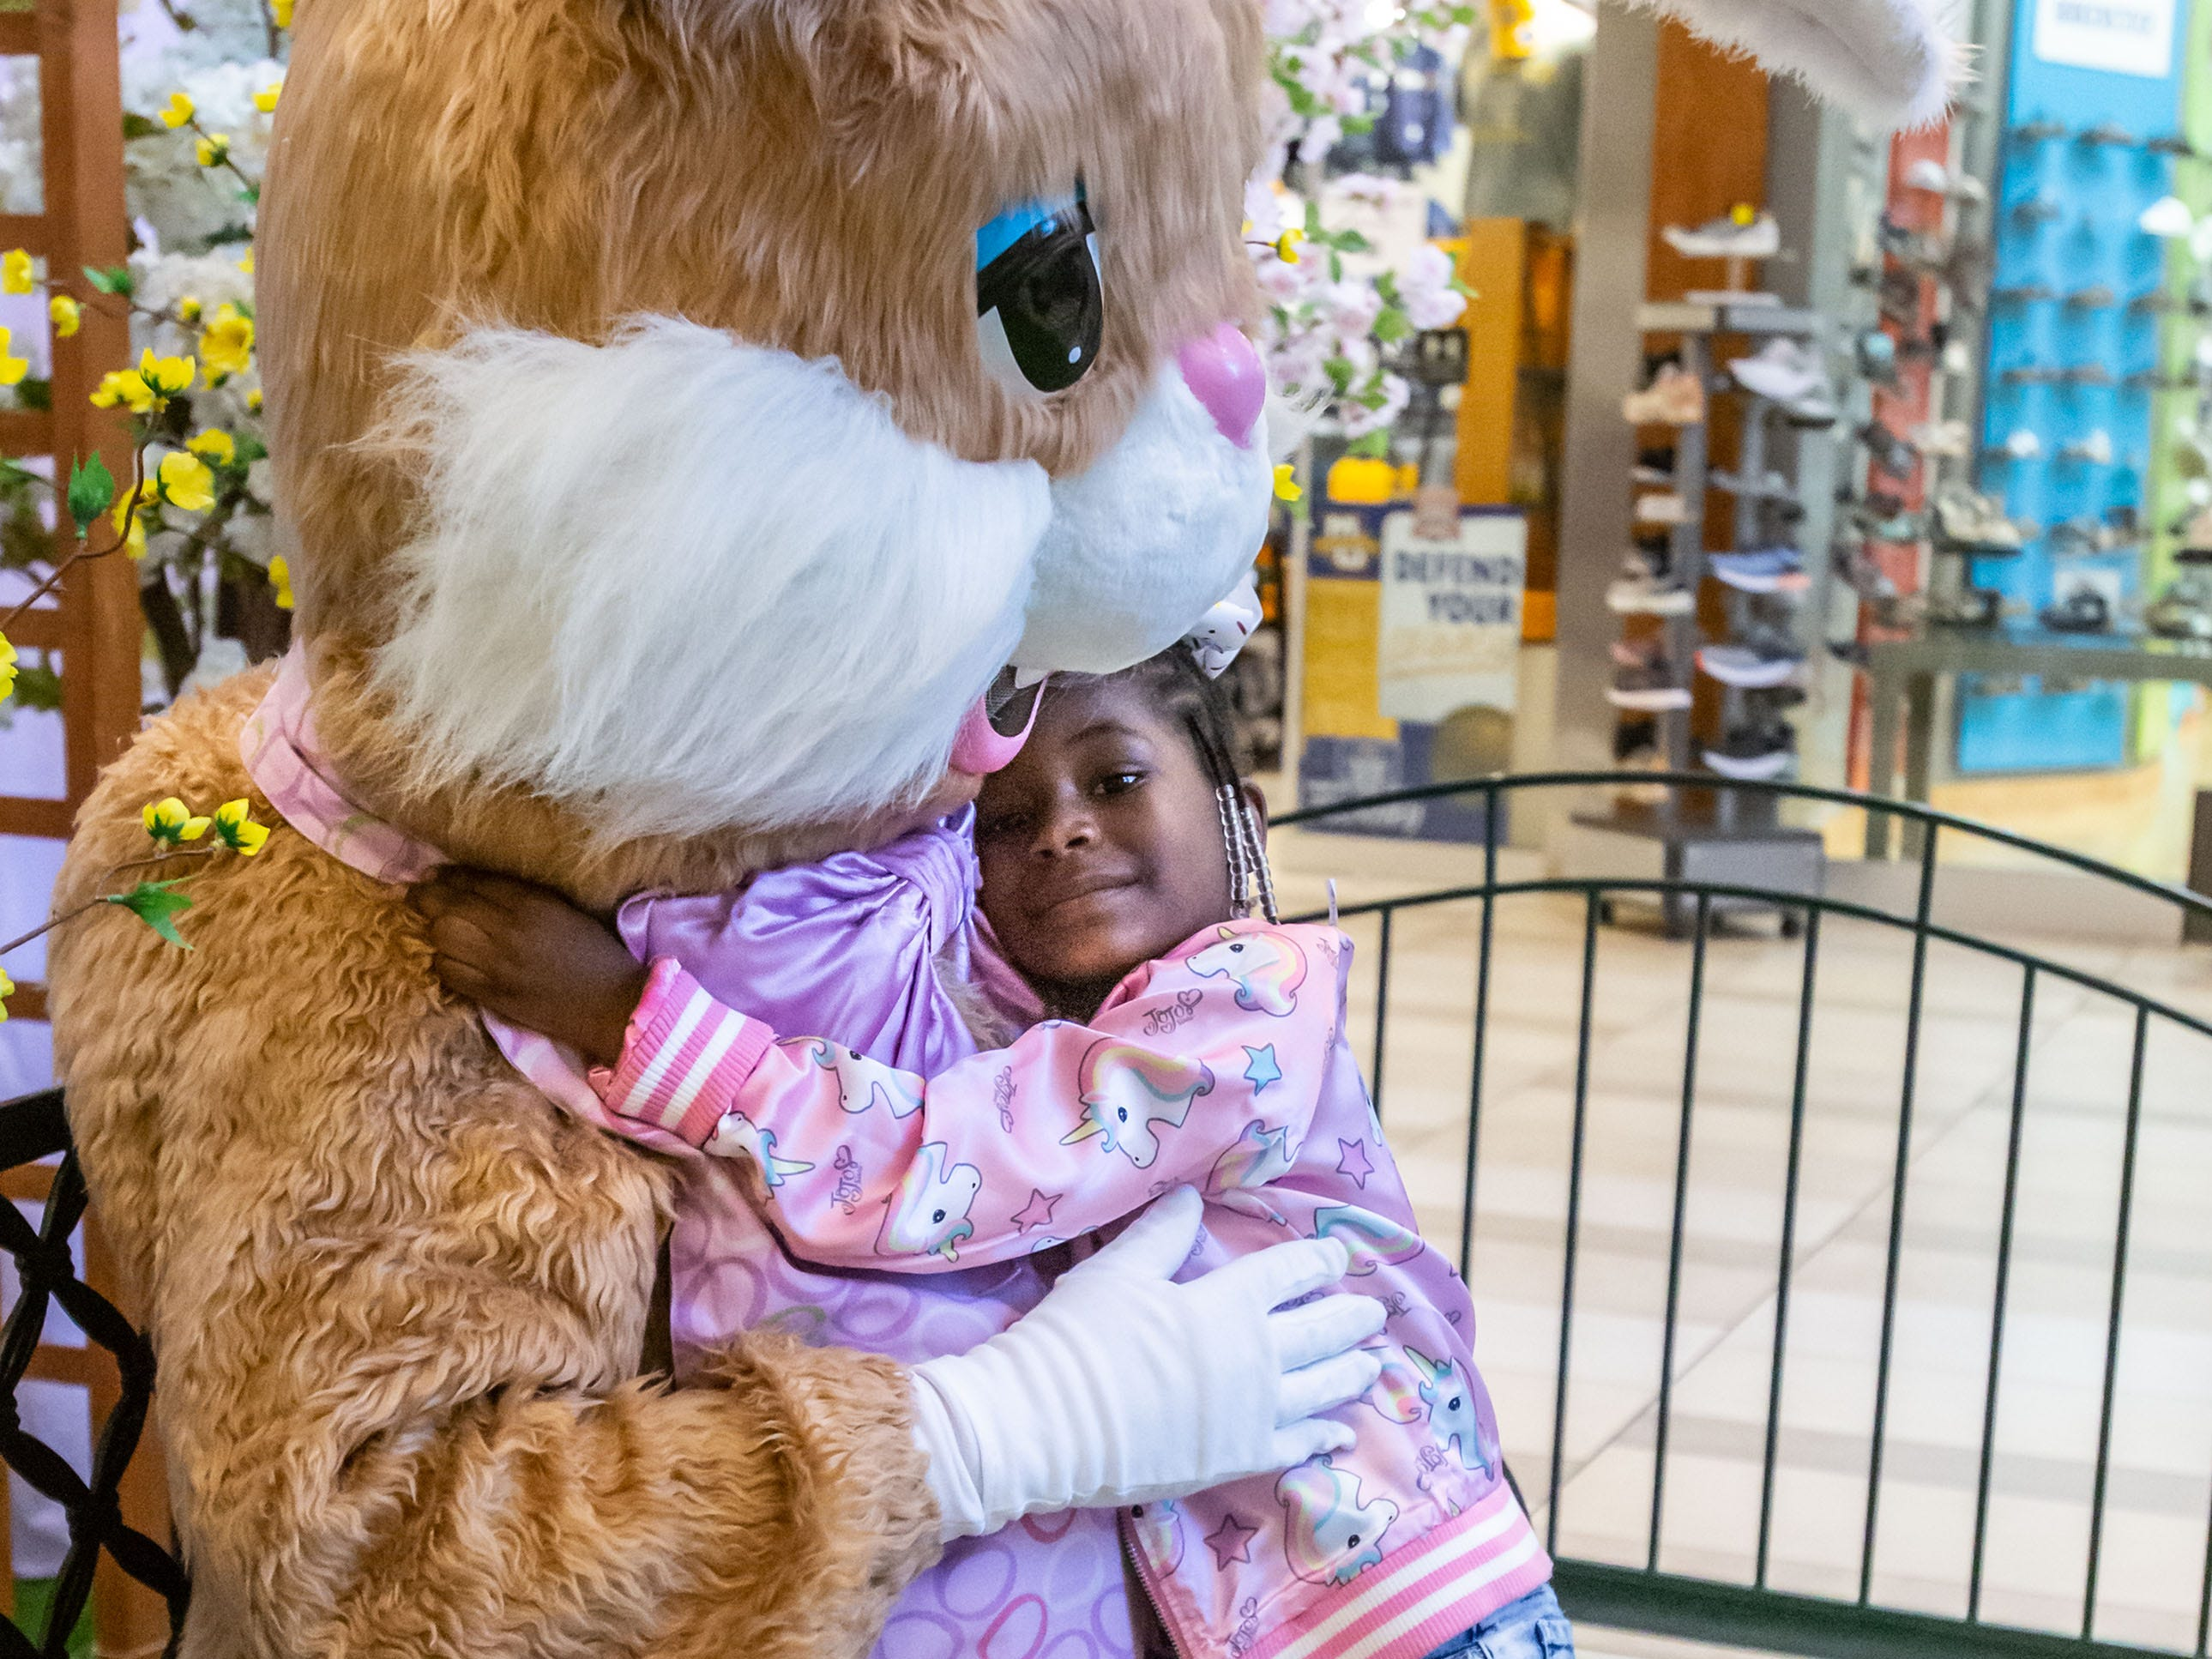 Four-year-old Aniyah Bingham of Milwaukee gives the Easter Bunny a hug at Center Court in Brookfield Square Mall on Monday, April 1, 2019. The bunny will be at the mall Monday through Saturday 10am - 9pm and Sunday 11am - 6pm through Saturday, April 20. Pets are welcome to visit from 6-9pm on Monday, April 1, 8 & 15.